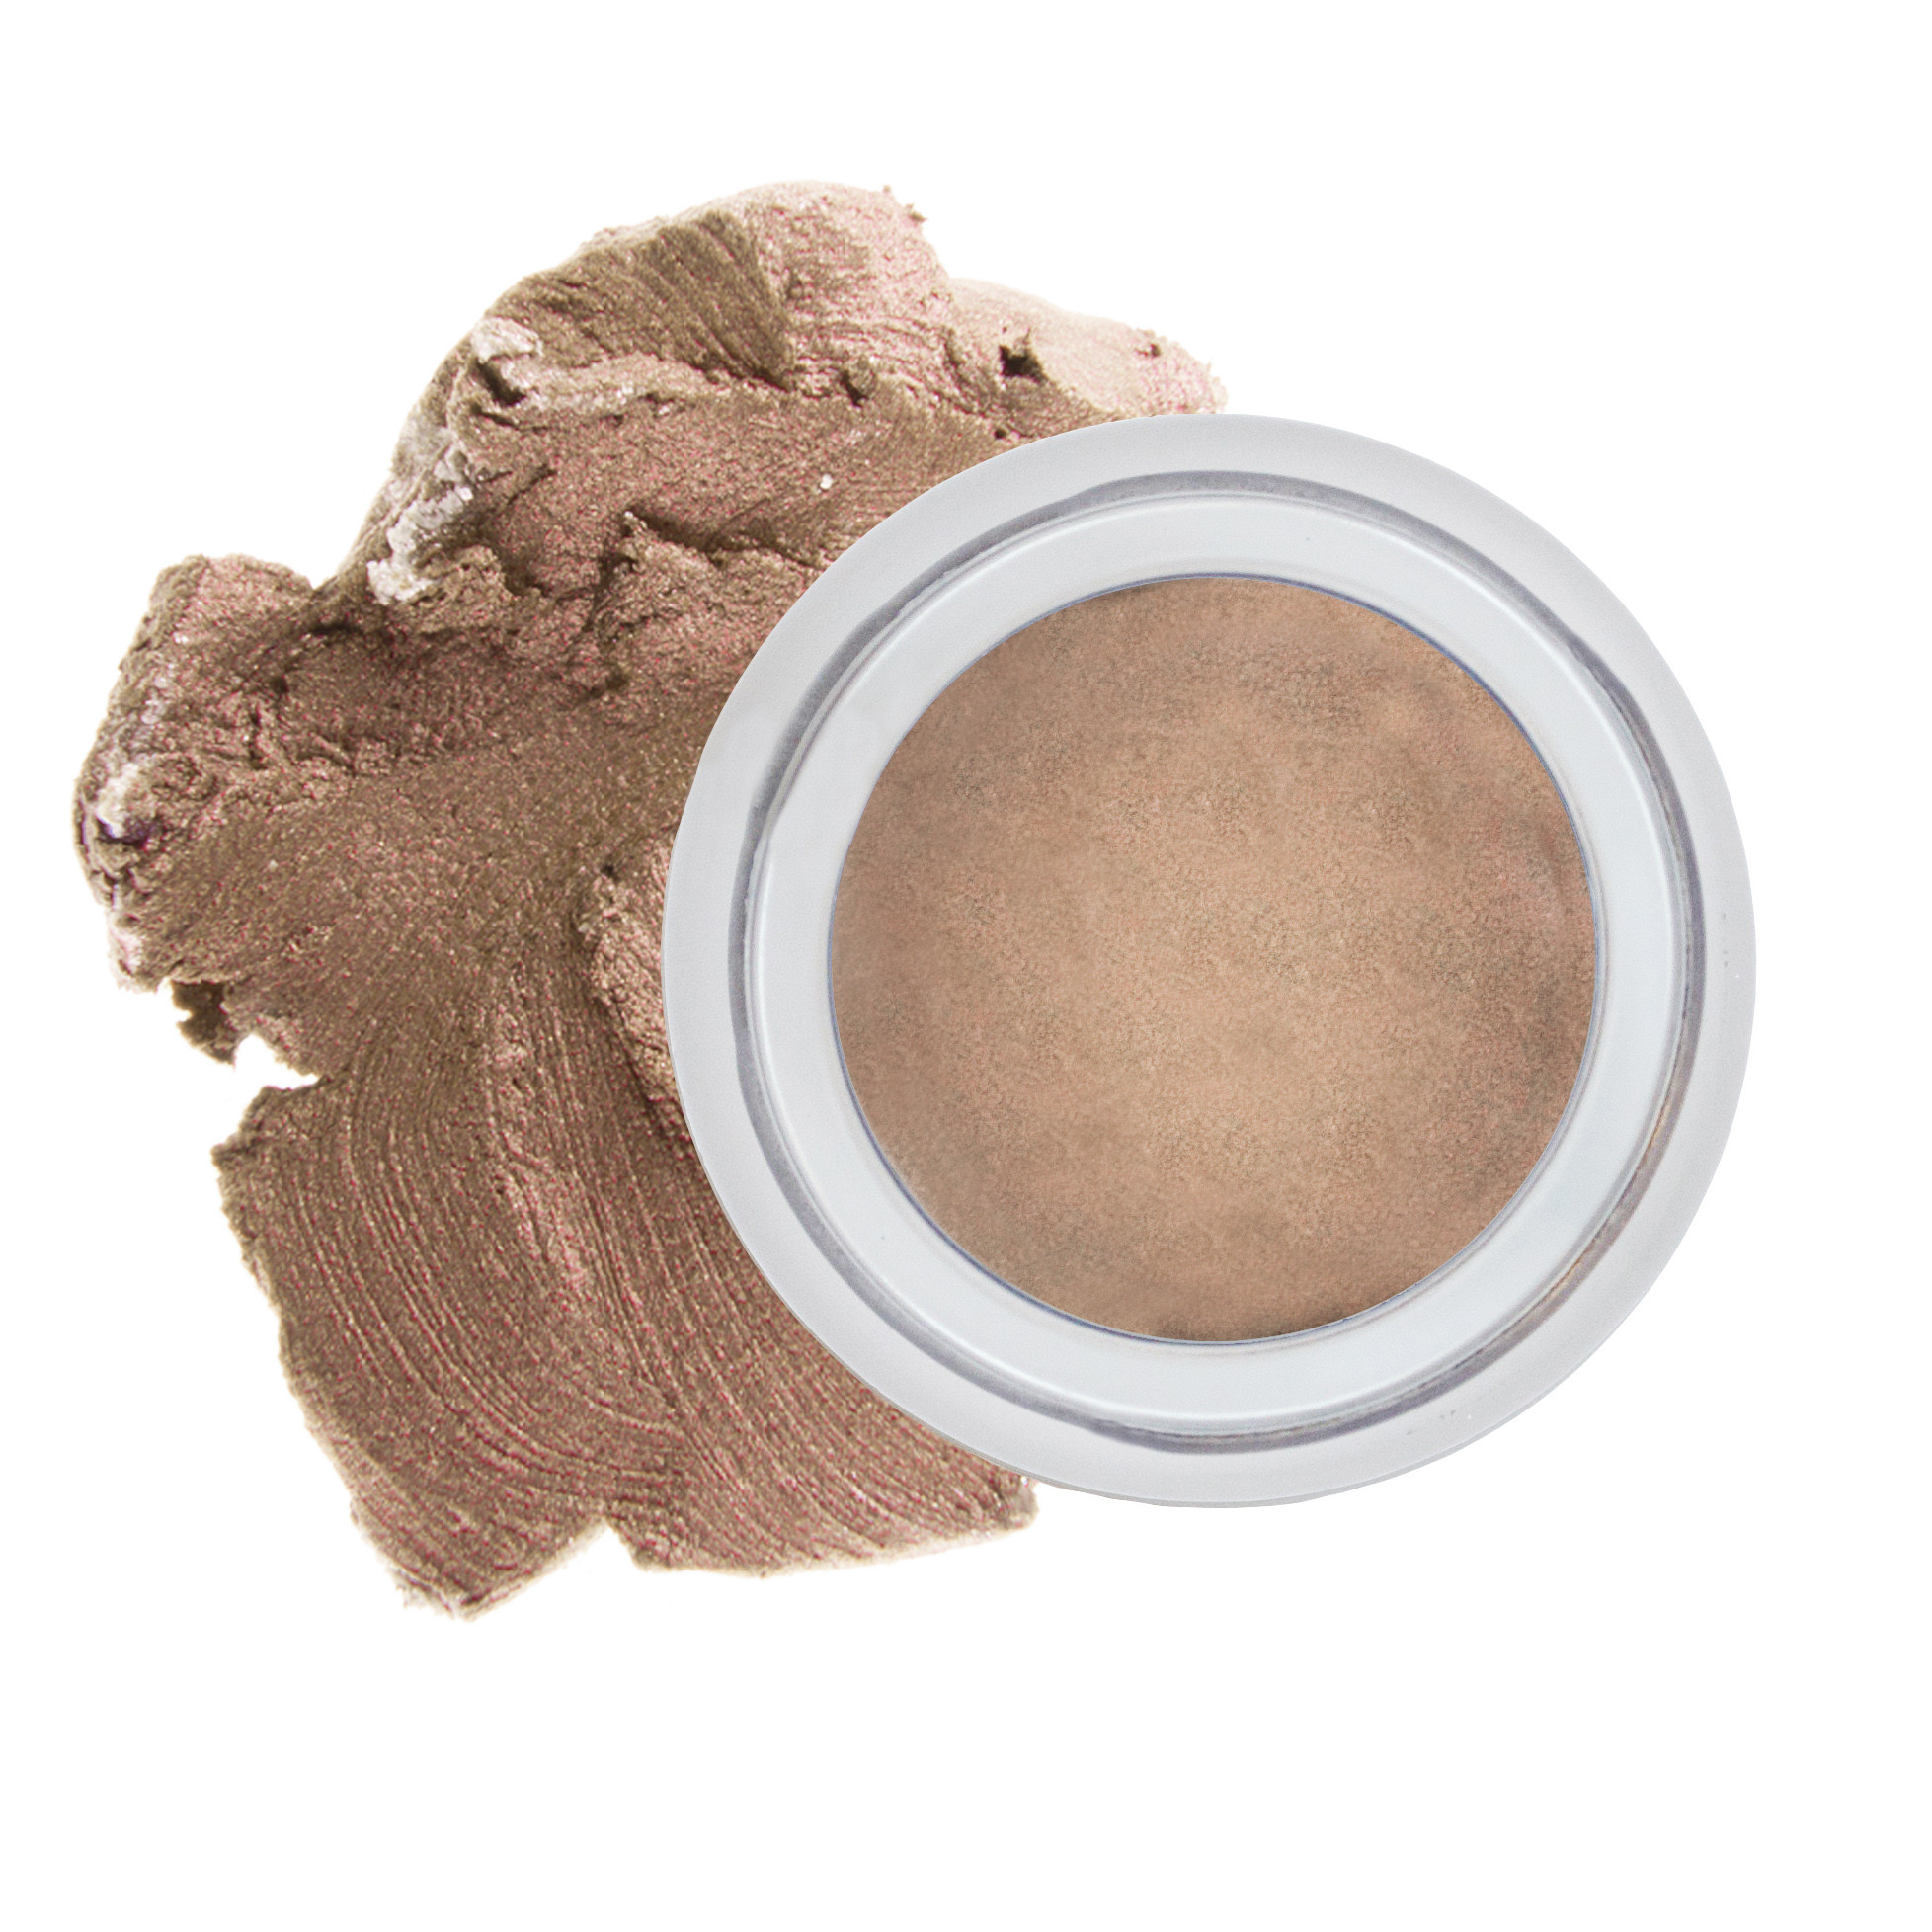 Creme Eye Shadow in Ivory